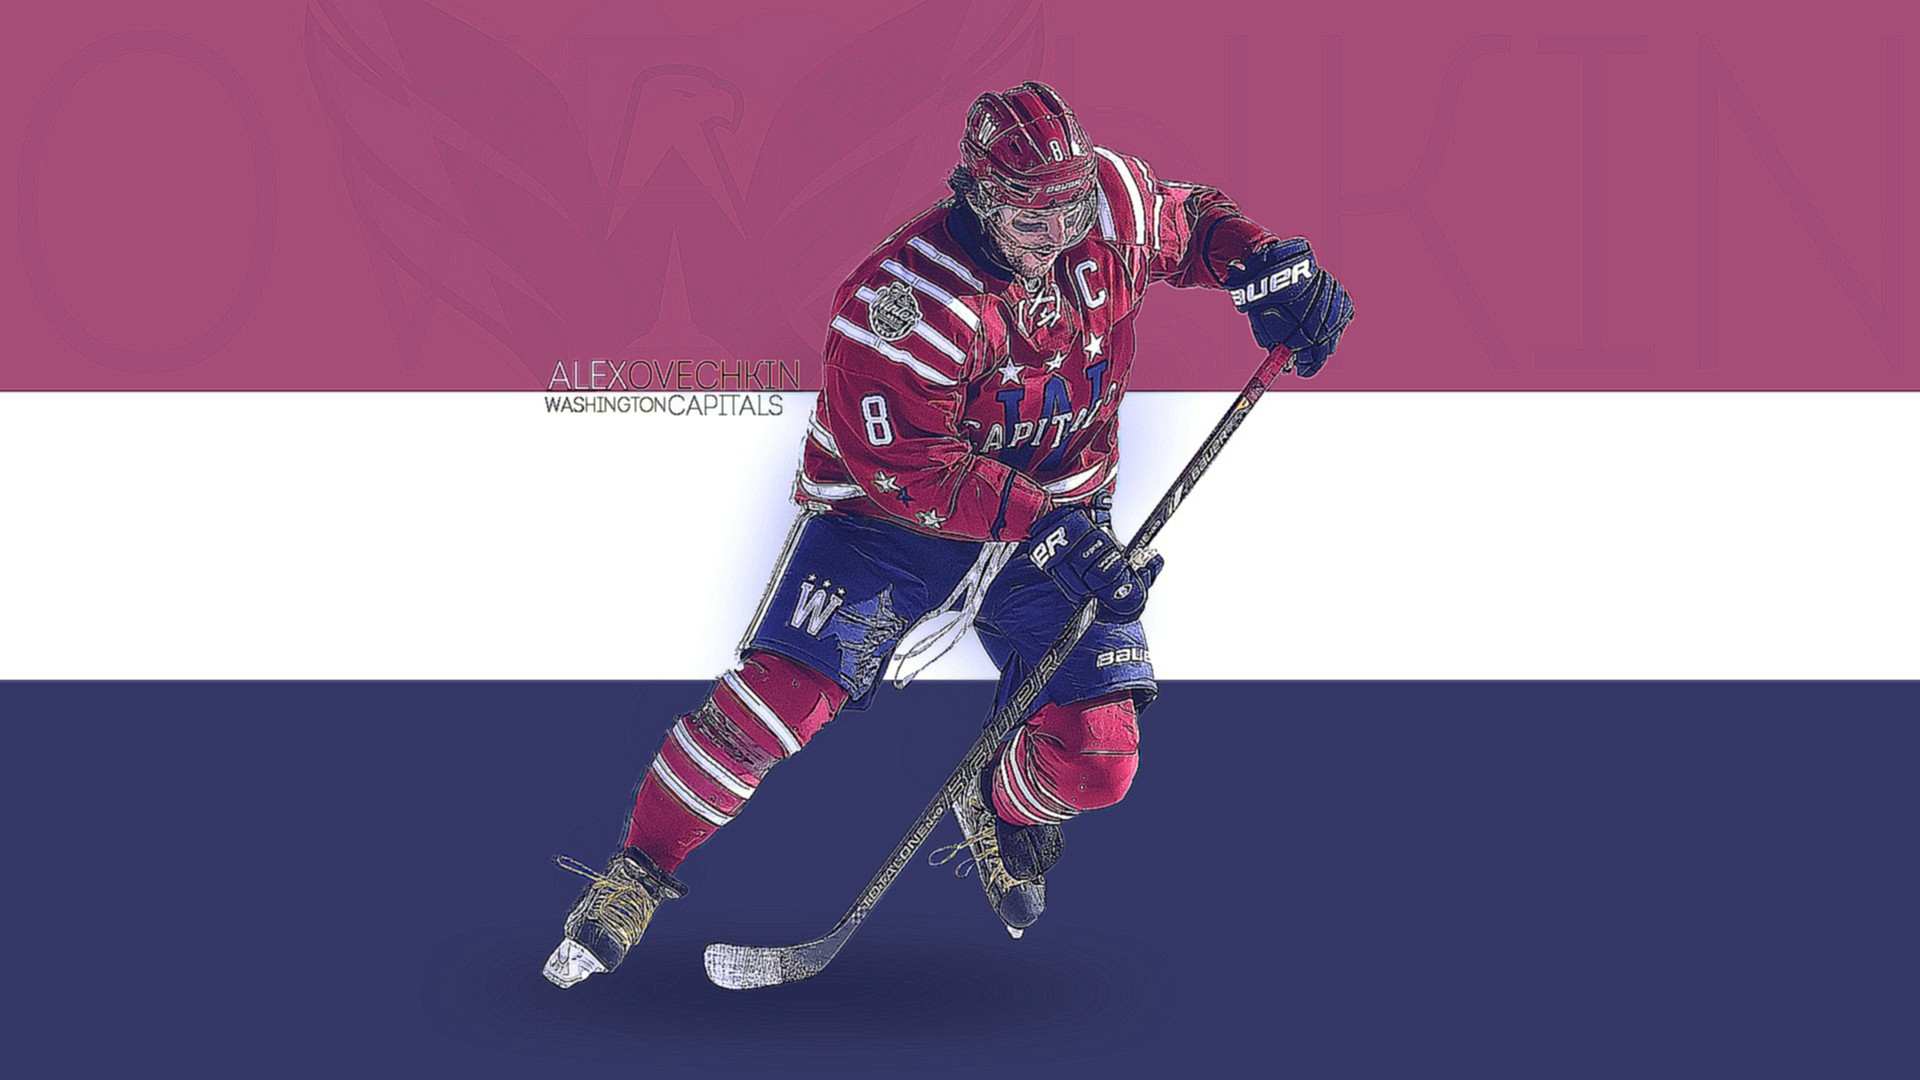 Washington Capitals wallpapers free download on Wallpapers Bros